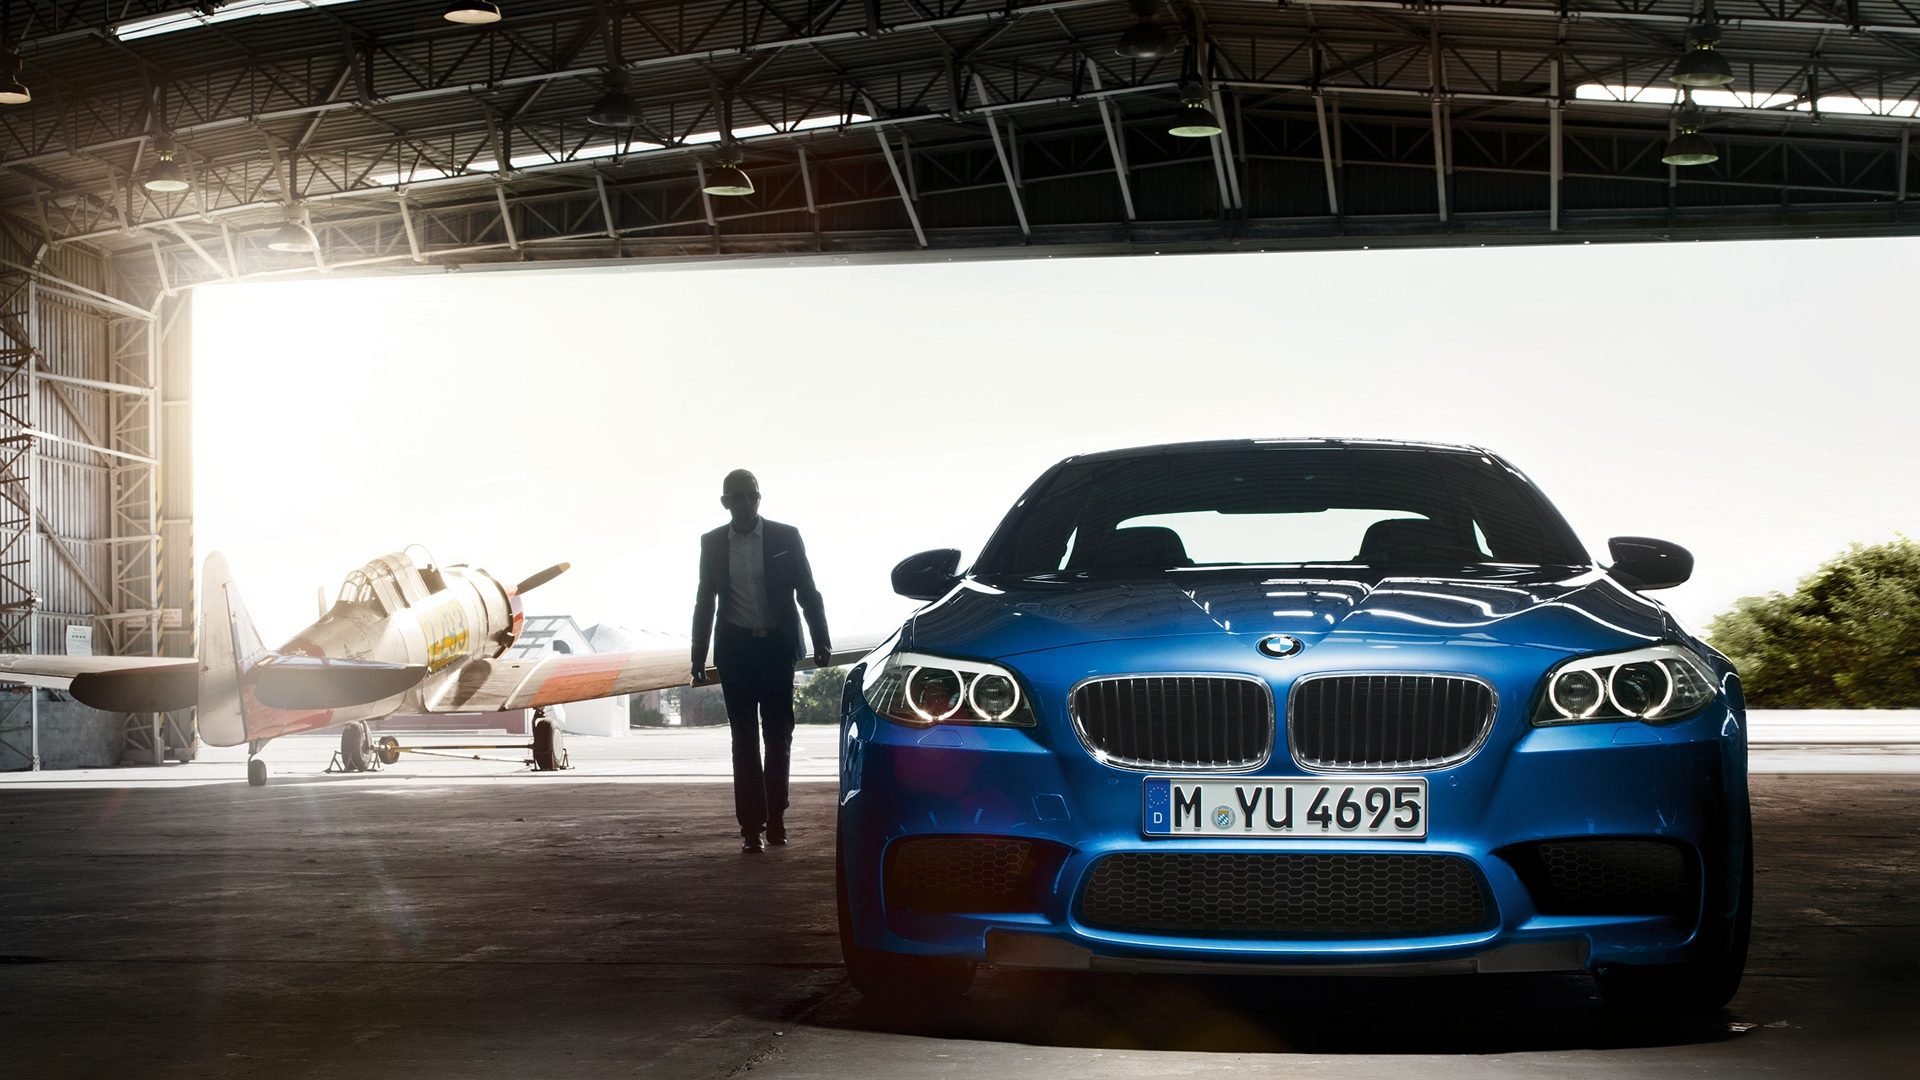 http://static.autoblog.nl/images/wp2011/wallpaper/BMW_M5_F10_Wallpaper1609_01.jpg